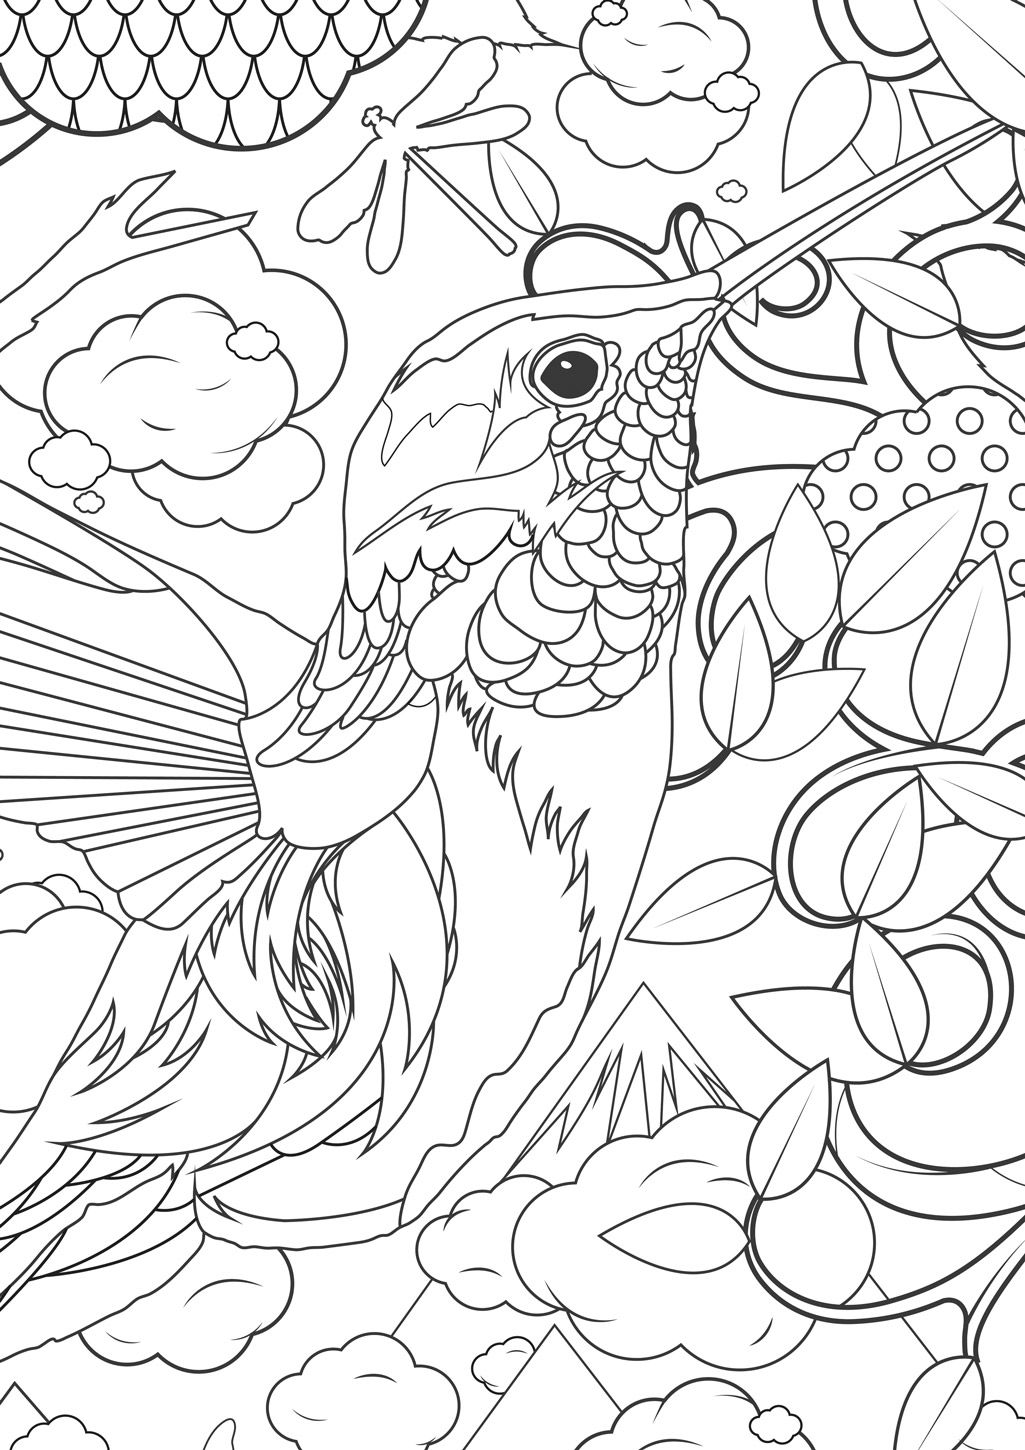 animal coloring pages for adults difficult animals hummingbird - Detailed Coloring Pages For Older Kids